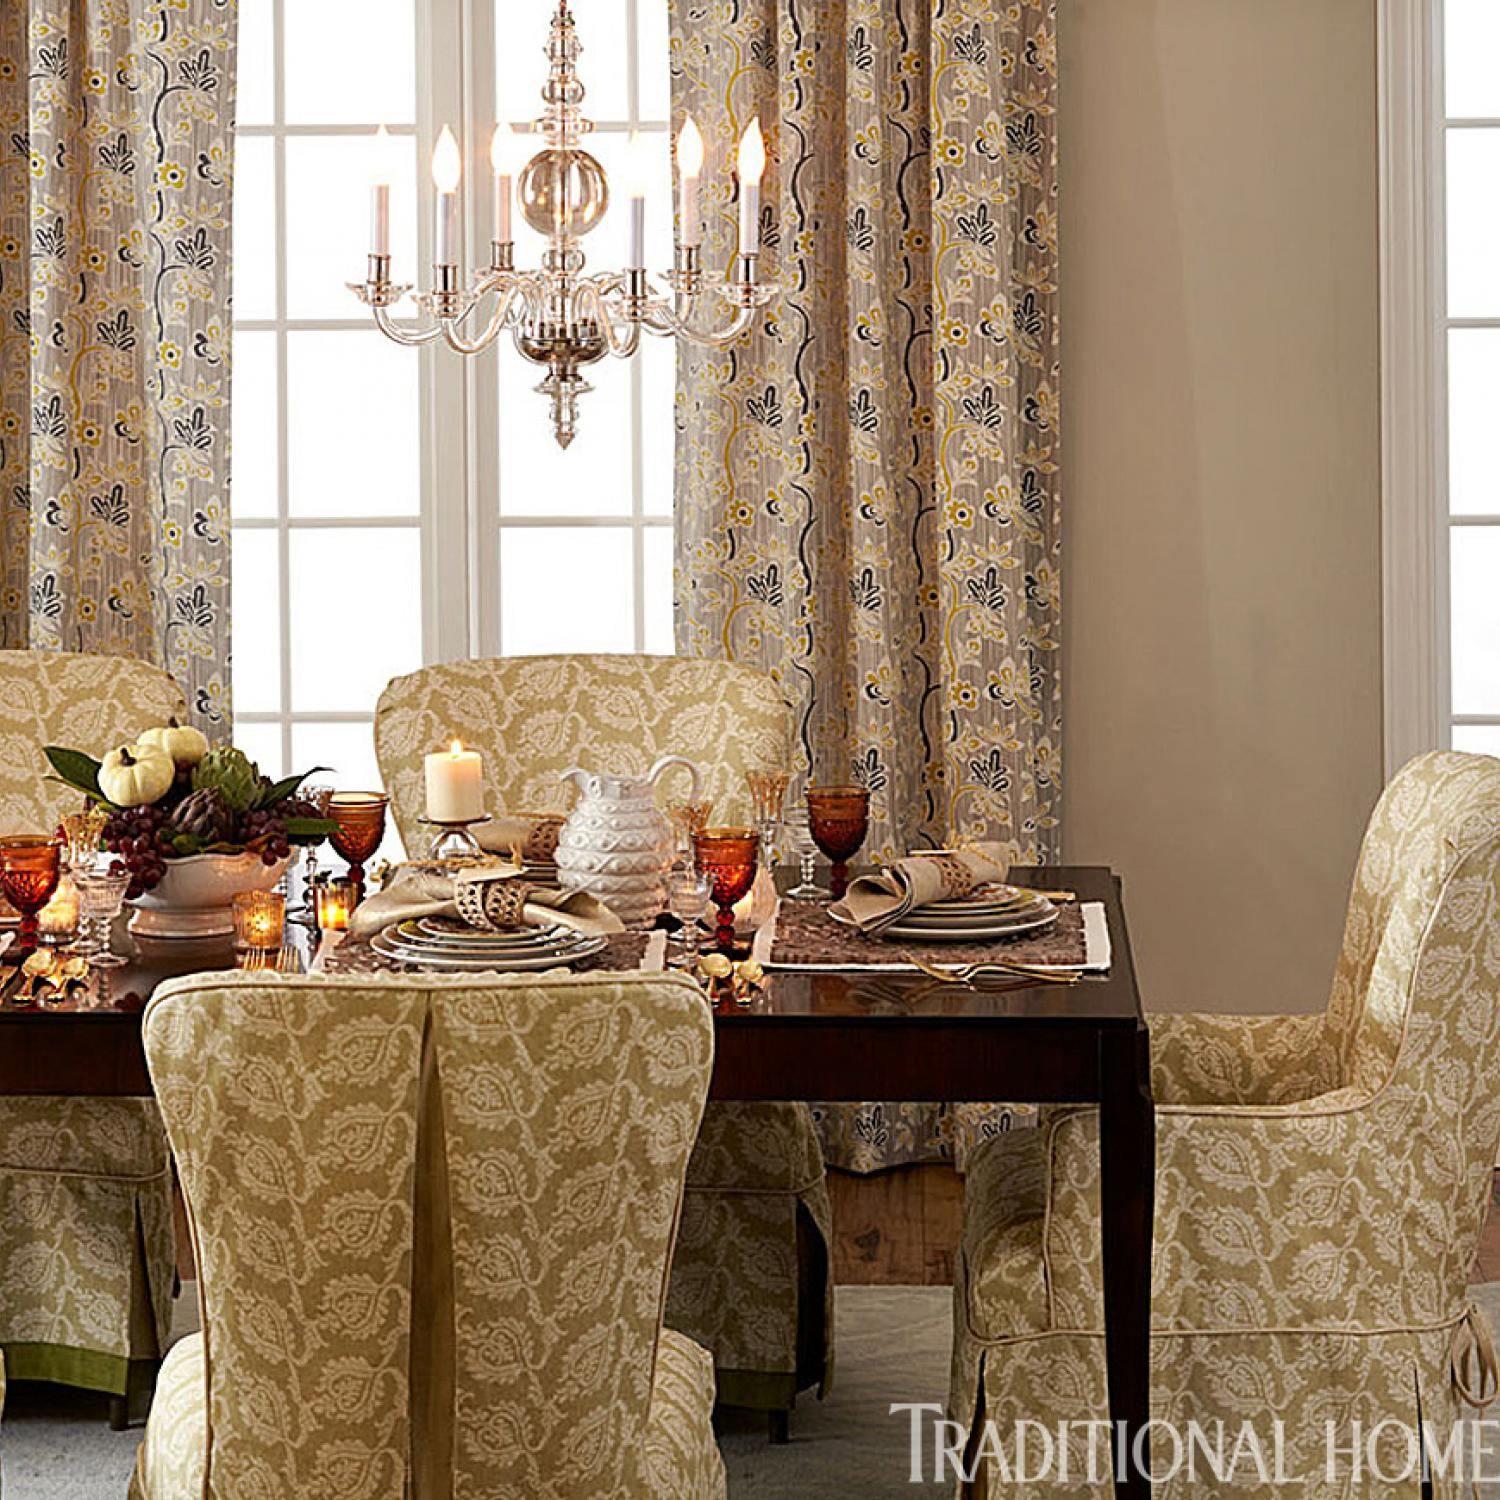 & Great Gatherings: Two Holiday Dinners | Traditional Home